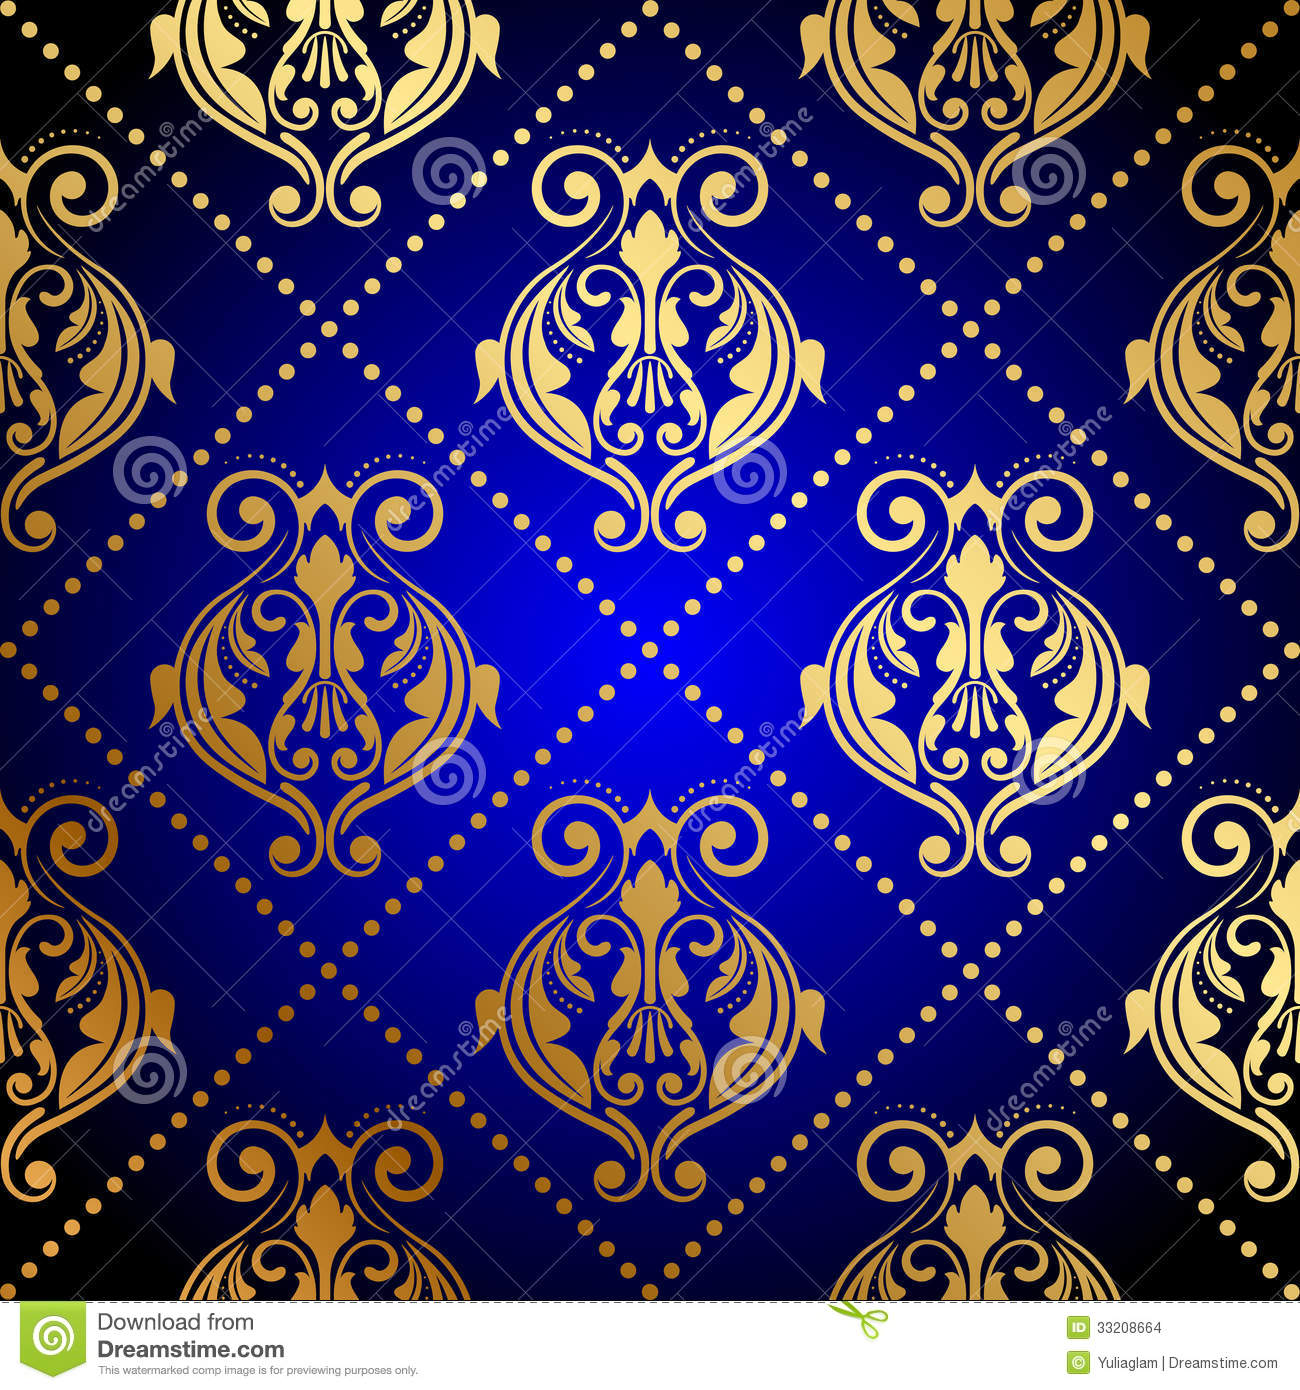 Free Download Navy Blue And Gold Wallpaper Navy Blue And